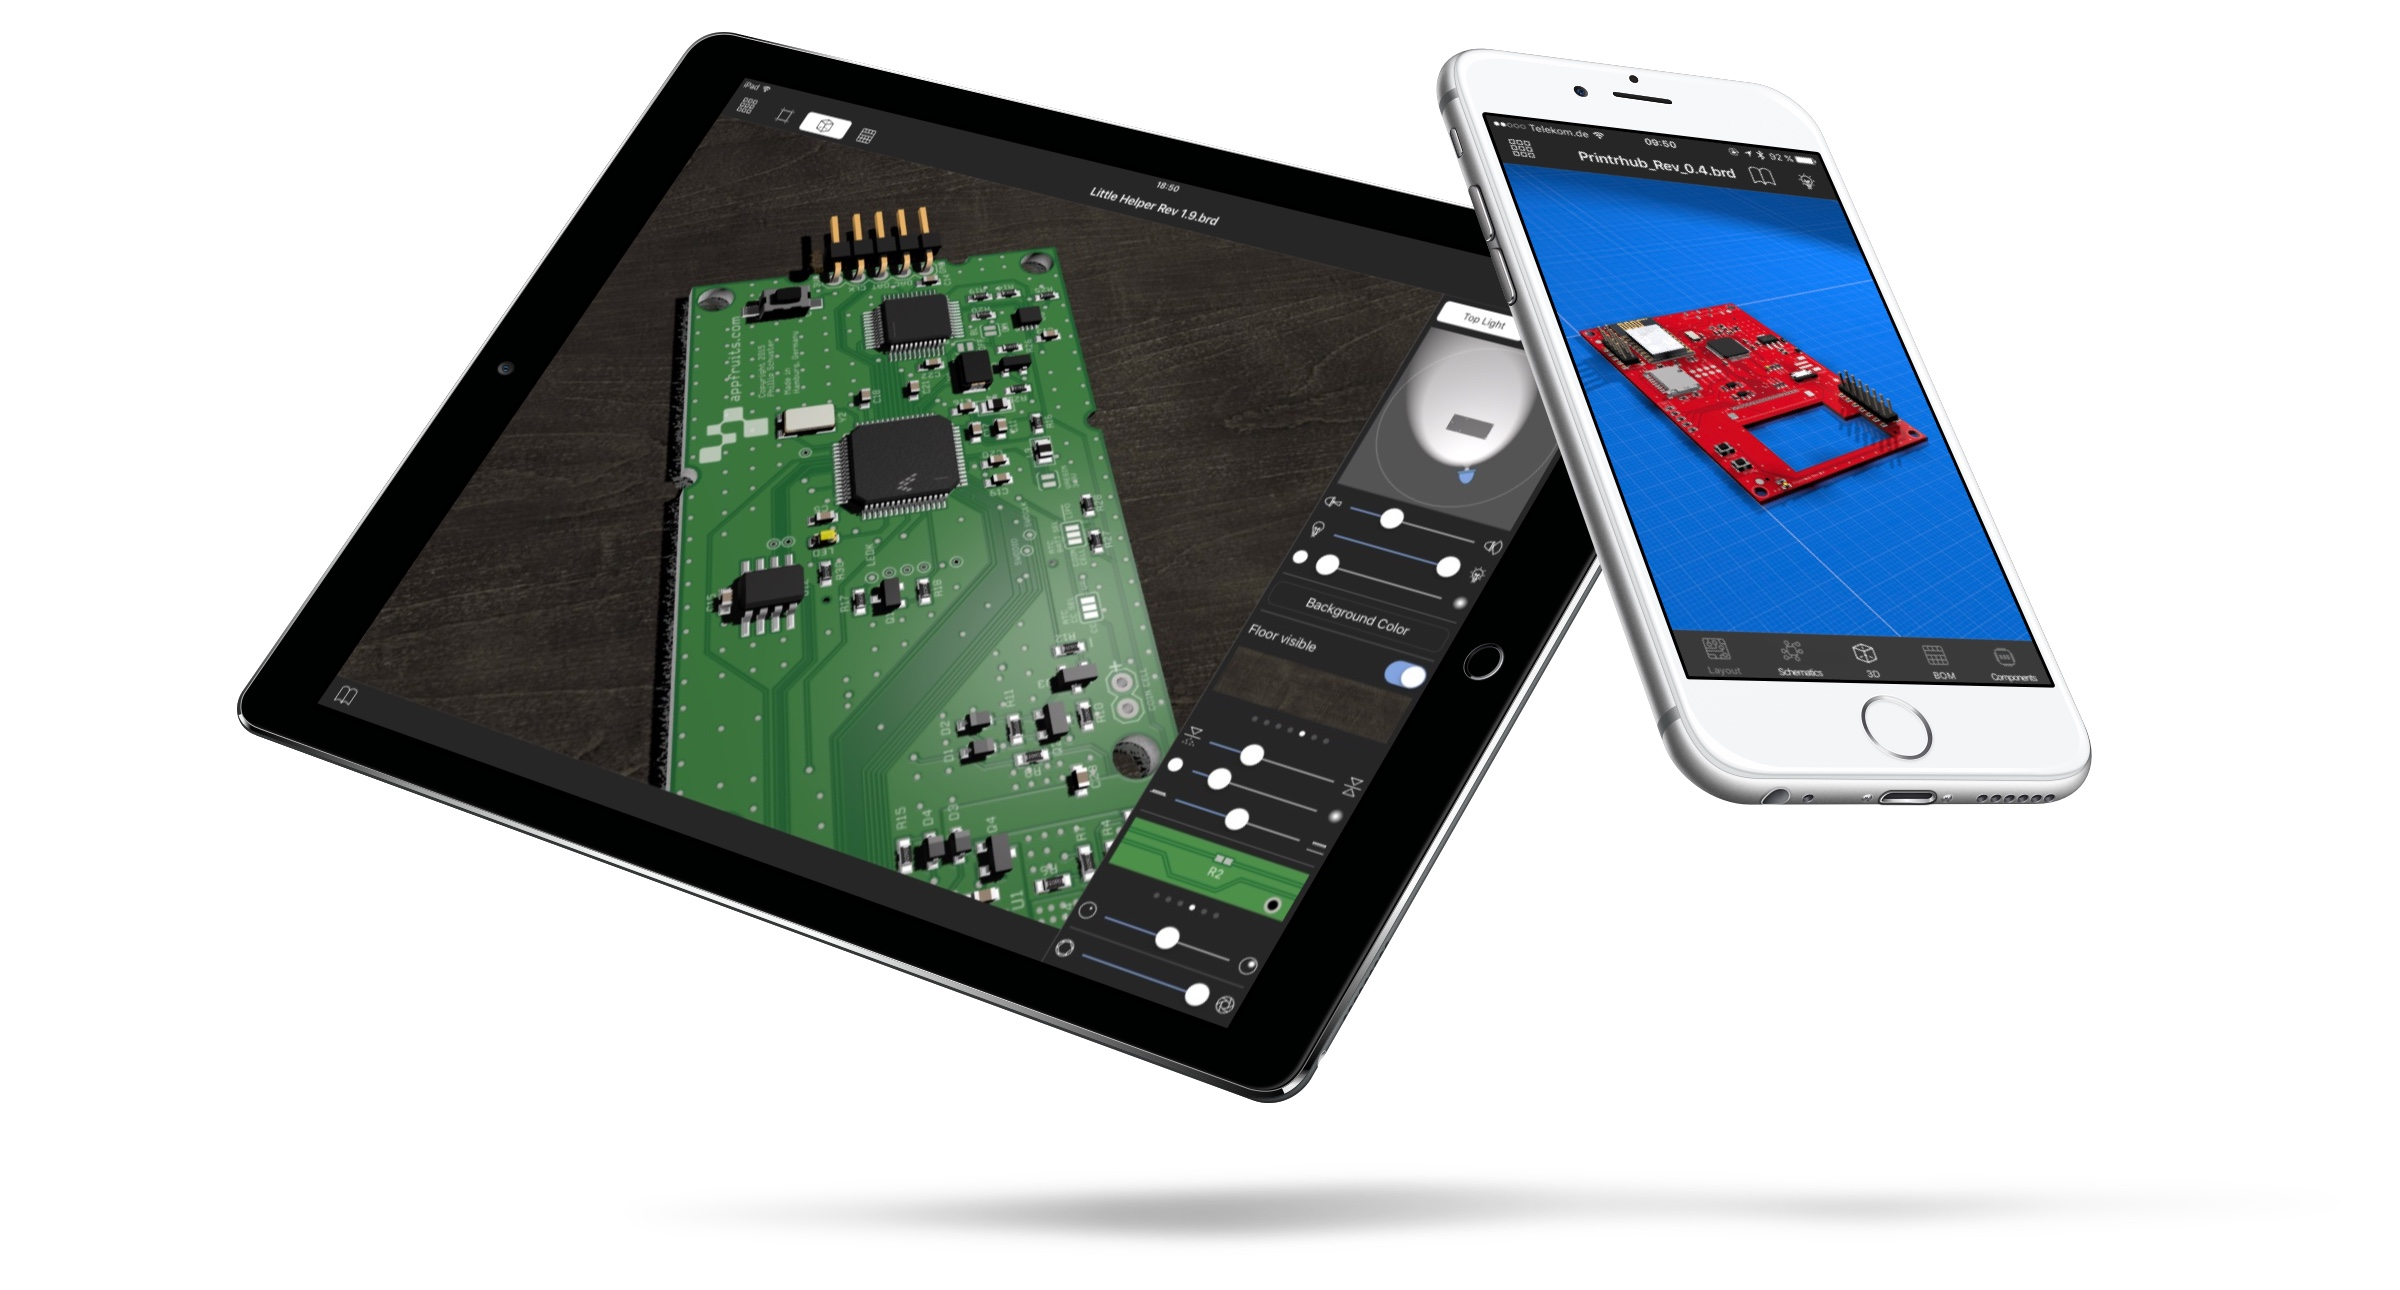 Copper For Ios Open And View Eagle Files On Iphone Ipad Source Pcb Design Software Takes Care Of Every Little Detail Your You Just Have To Assign 3d Models From Our Extensive Model Library Footprints Can